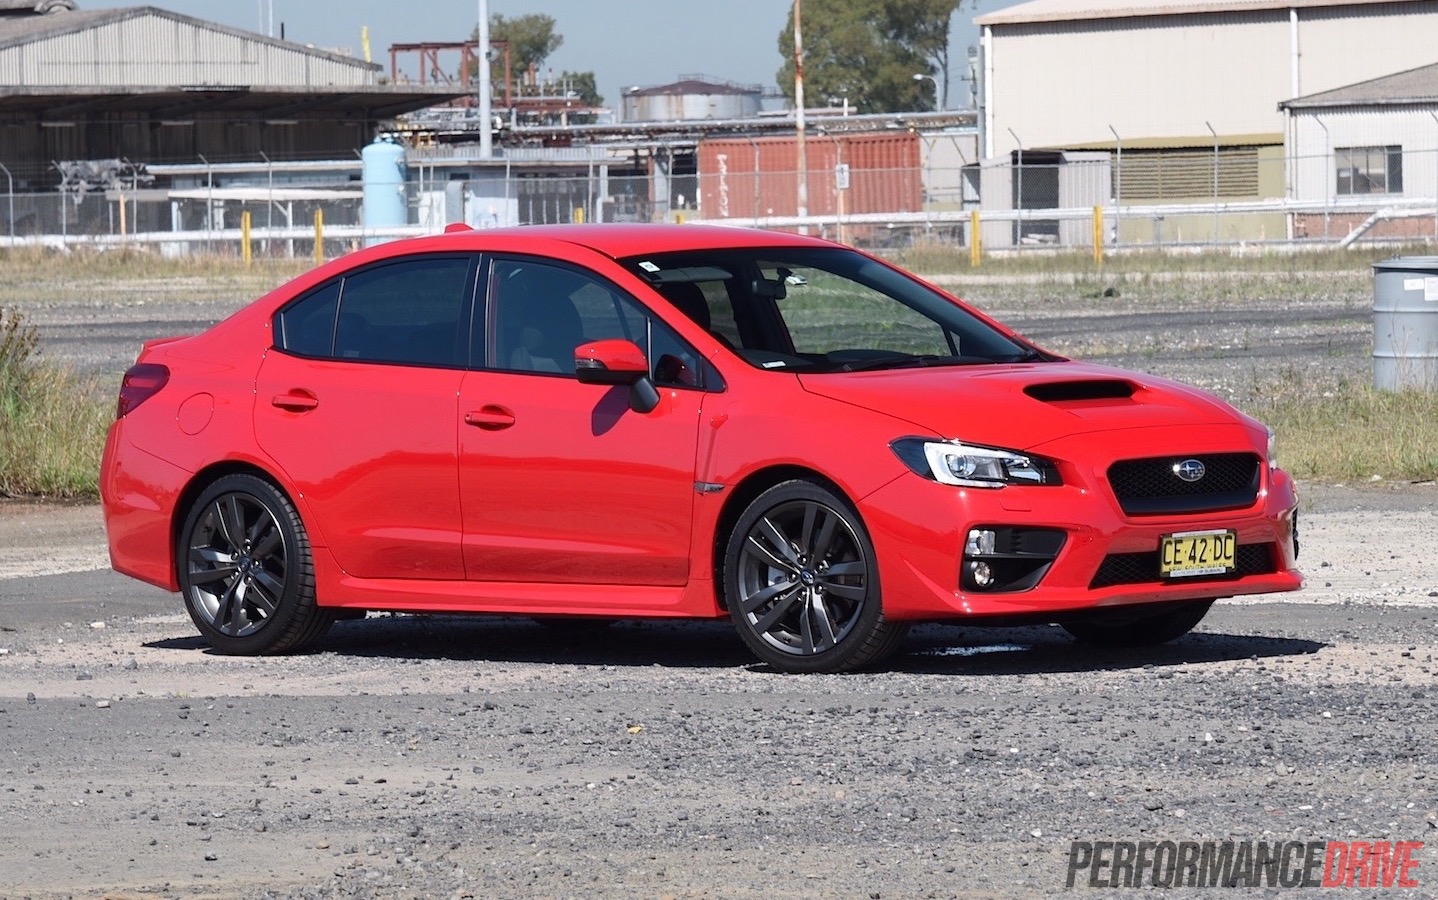 2016 subaru wrx review manual & cvt auto (video) | performancedrive.